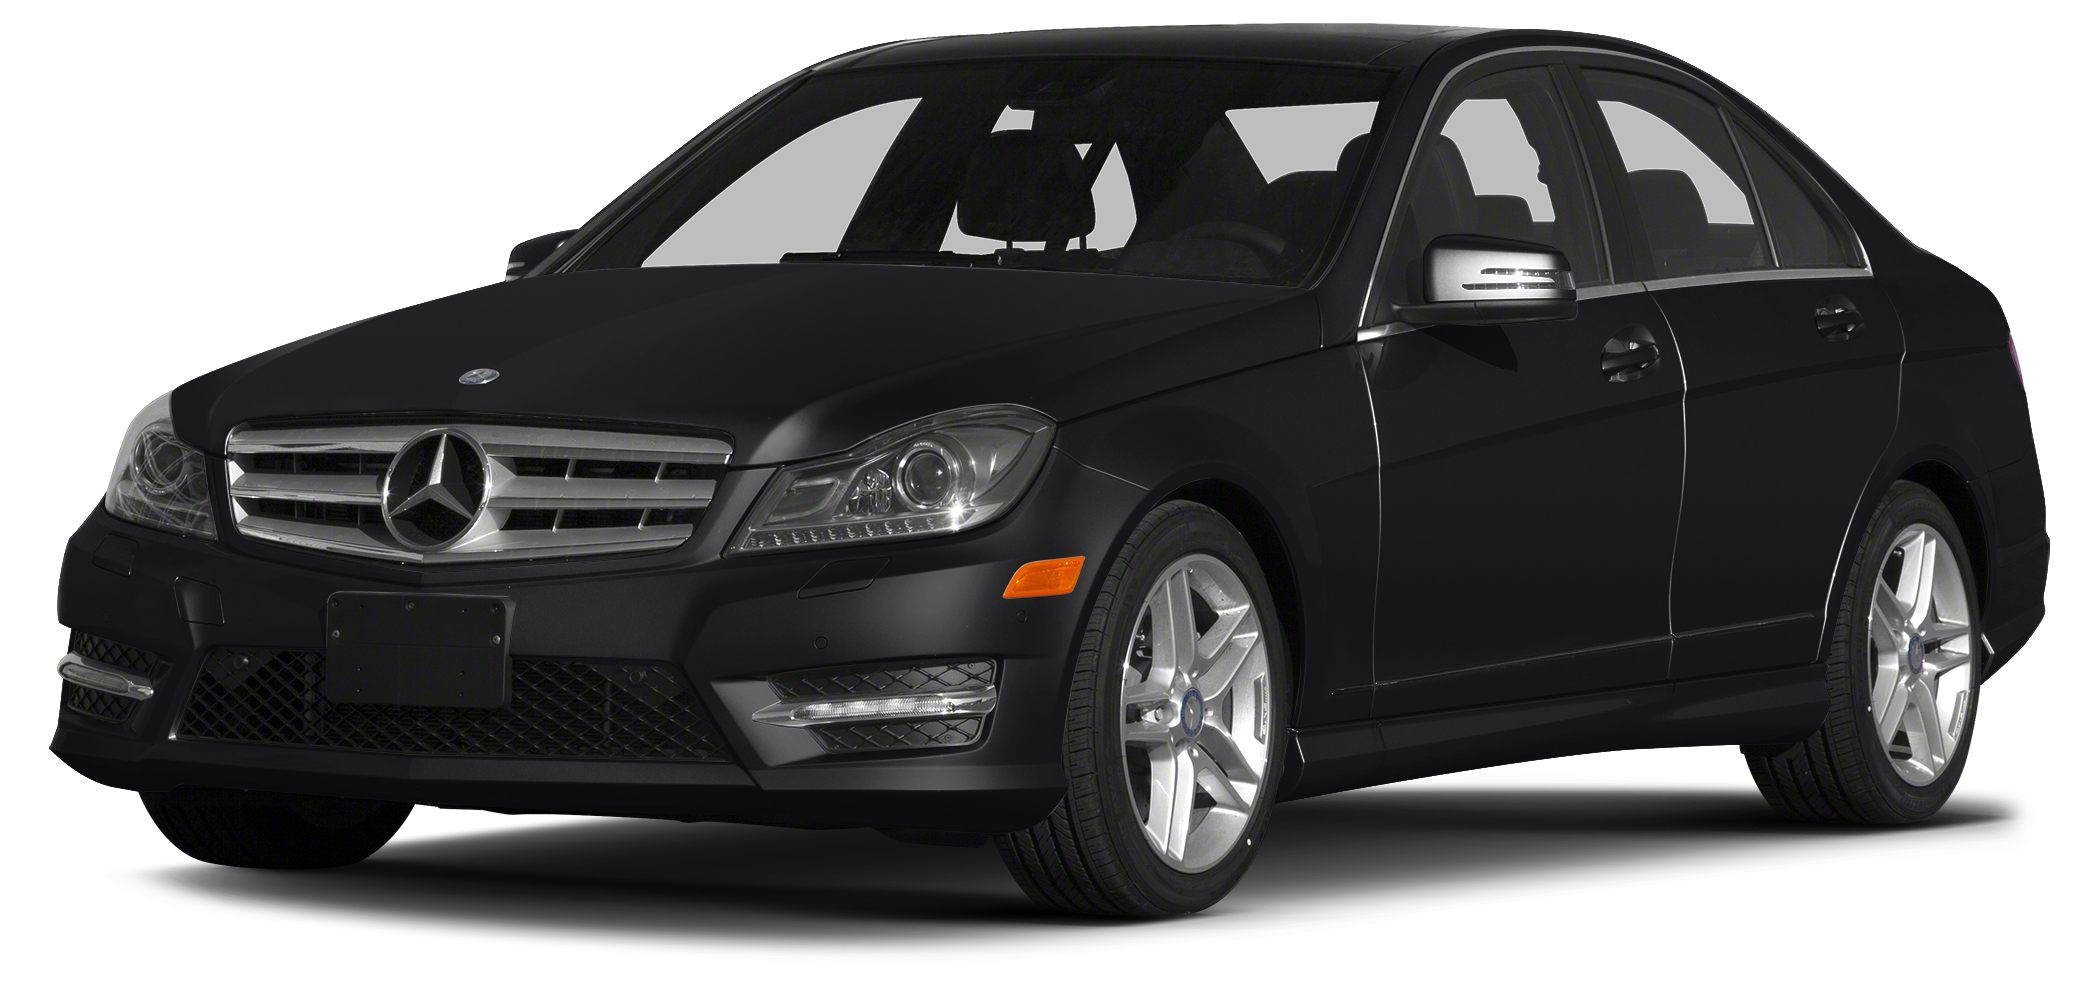 2013 MERCEDES C-Class C300 Vehicle Detailed Recent Oil Change and Passed Dealer Inspection The